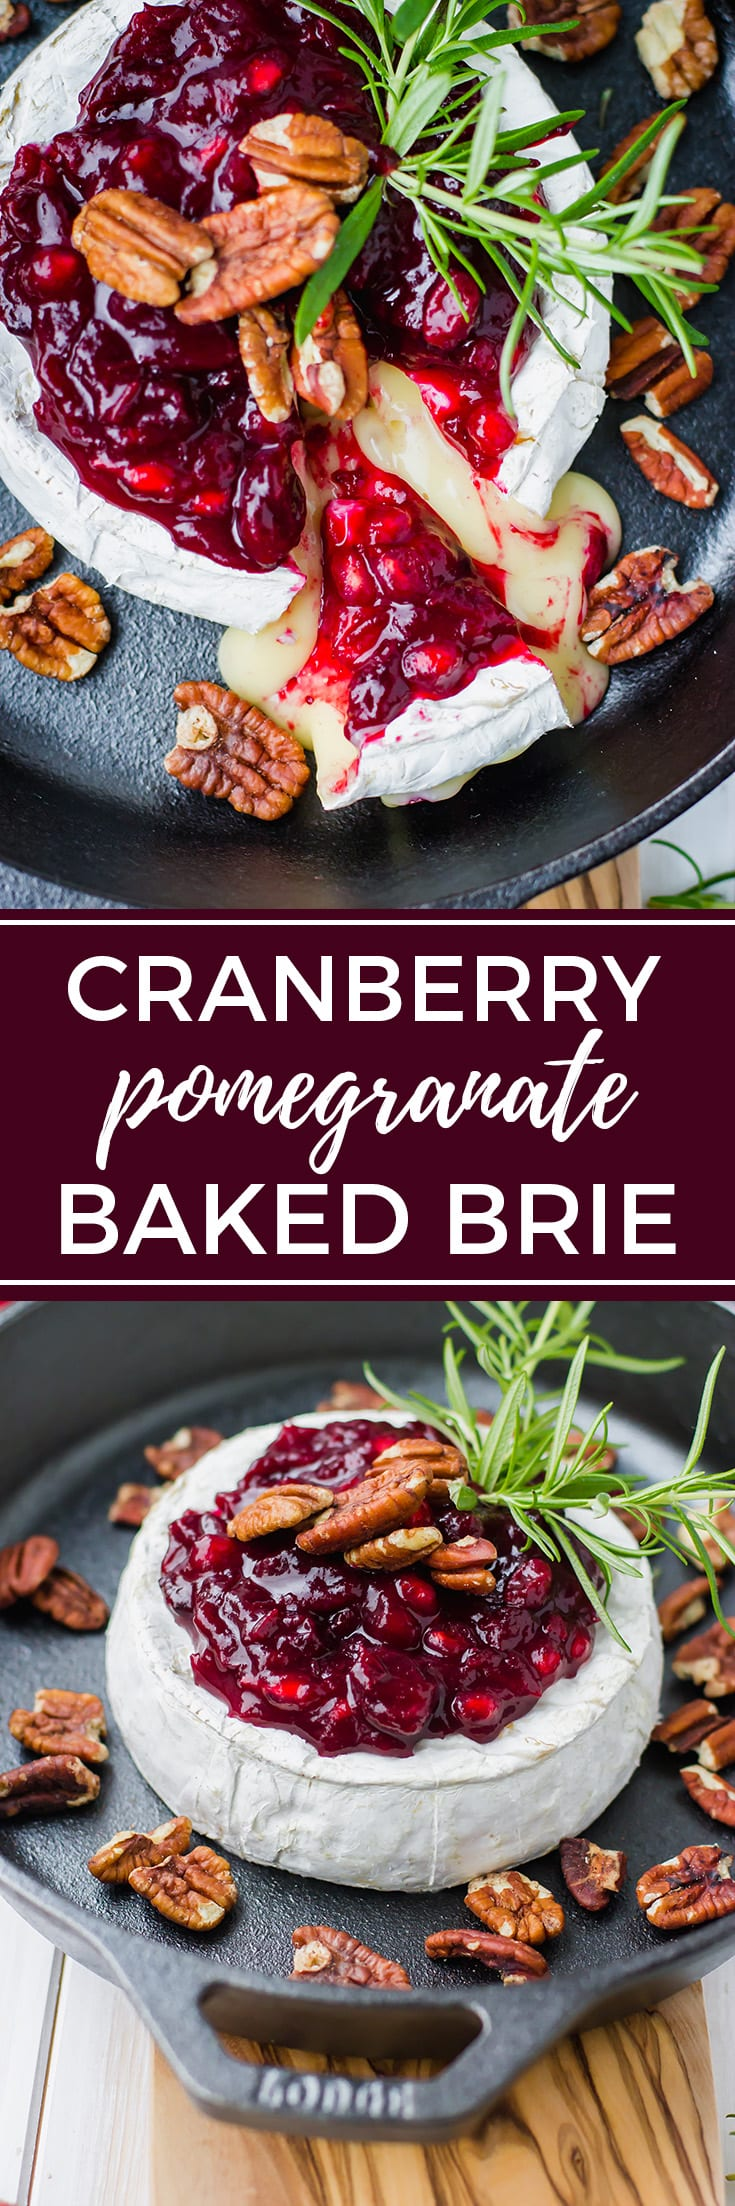 Cranberry pomegranate baked brie | The ultimate festive, delicious, and easy holiday party appetizer. #bakedbrie #partyappetizers #holidayfood